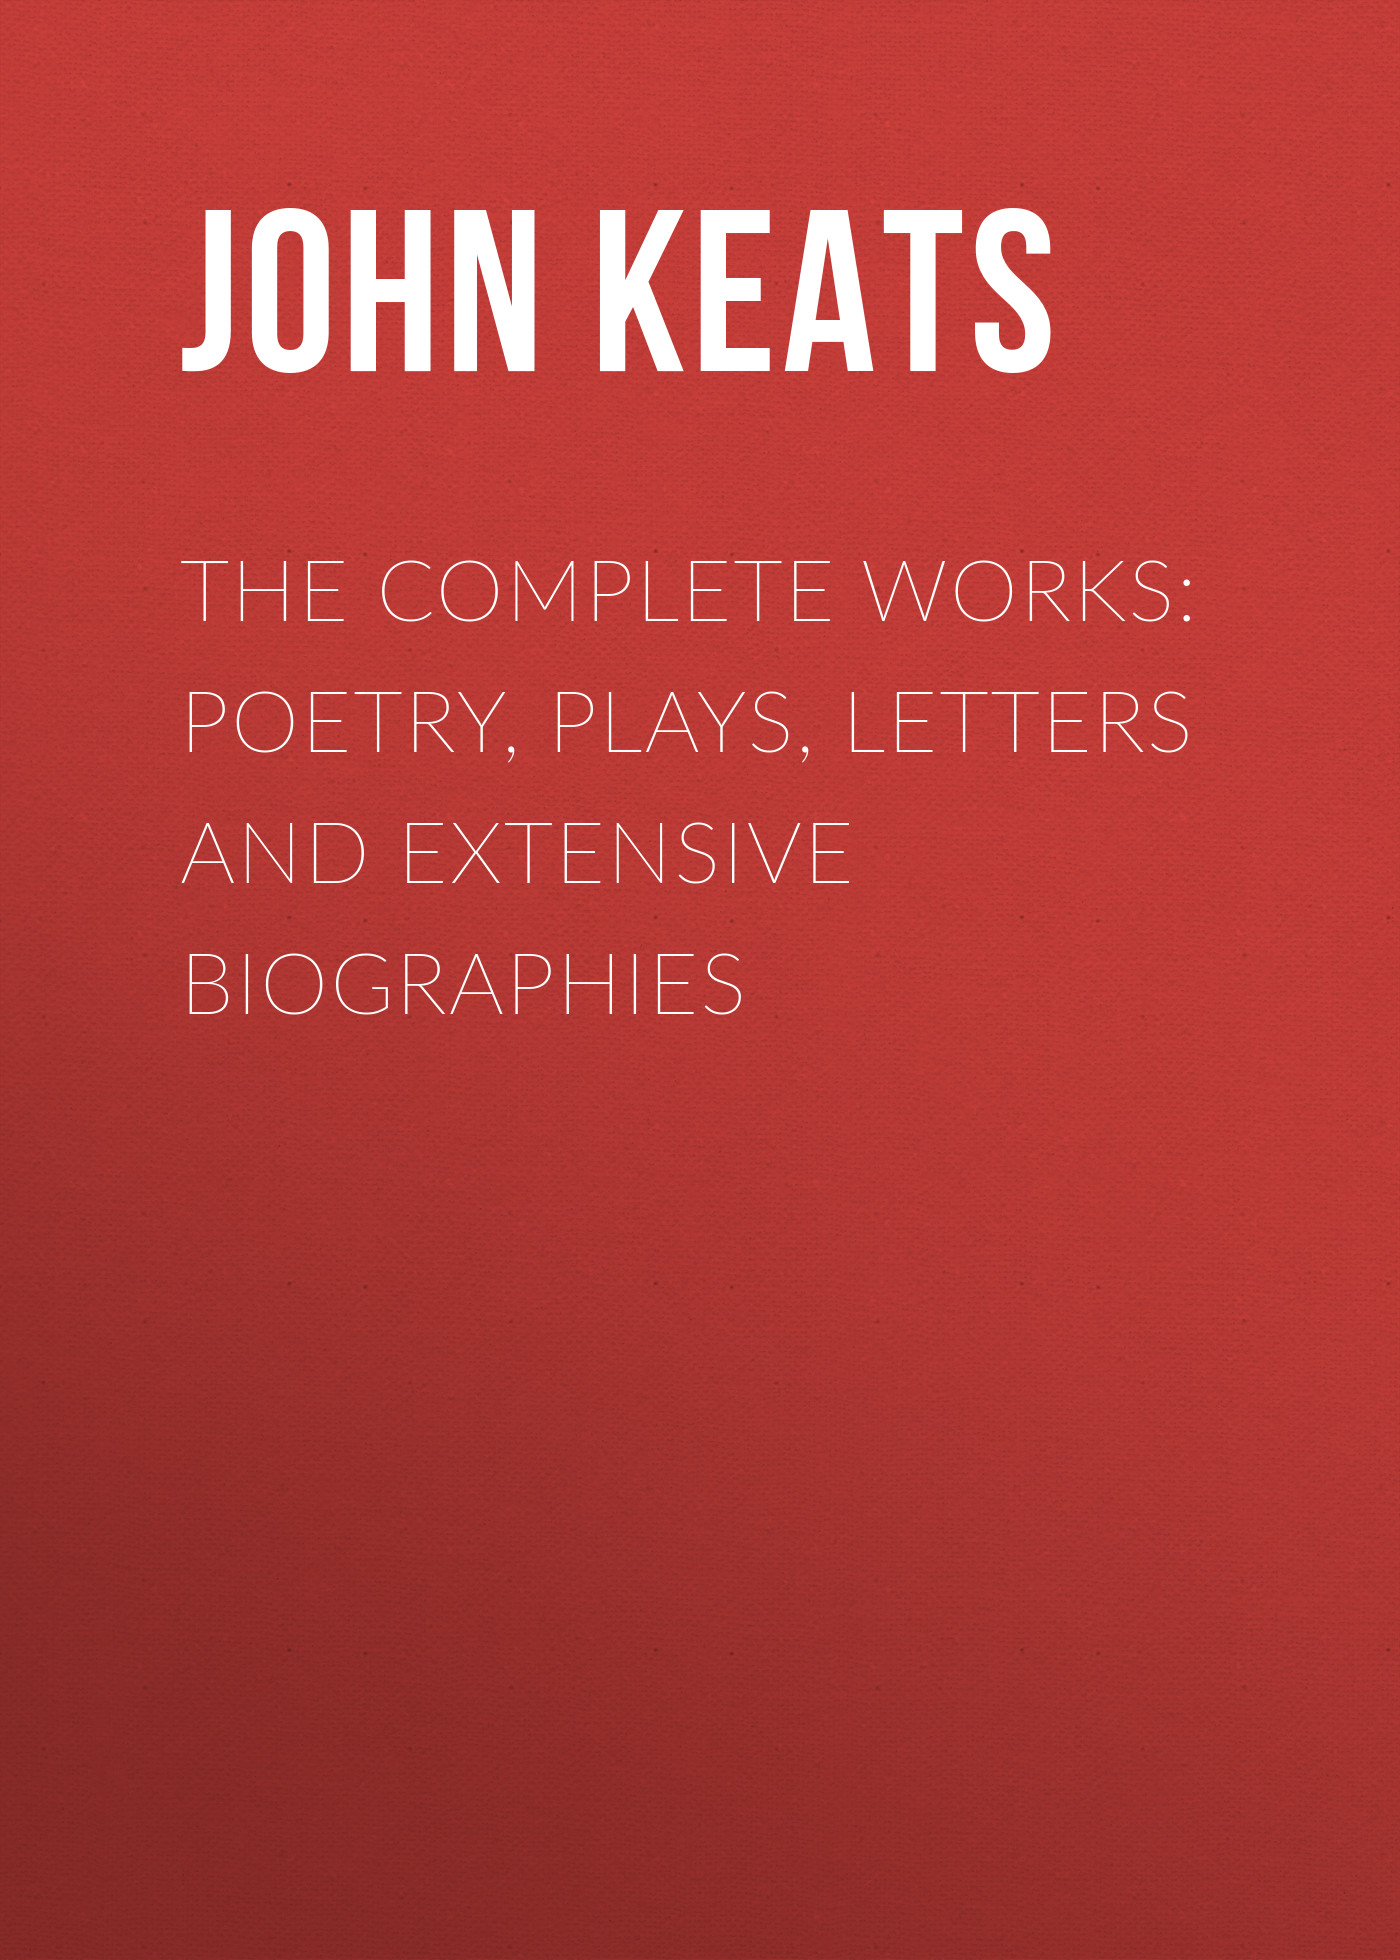 John Keats The Complete Works: Poetry, Plays, Letters and Extensive Biographies complete poems and selected letters of john keats